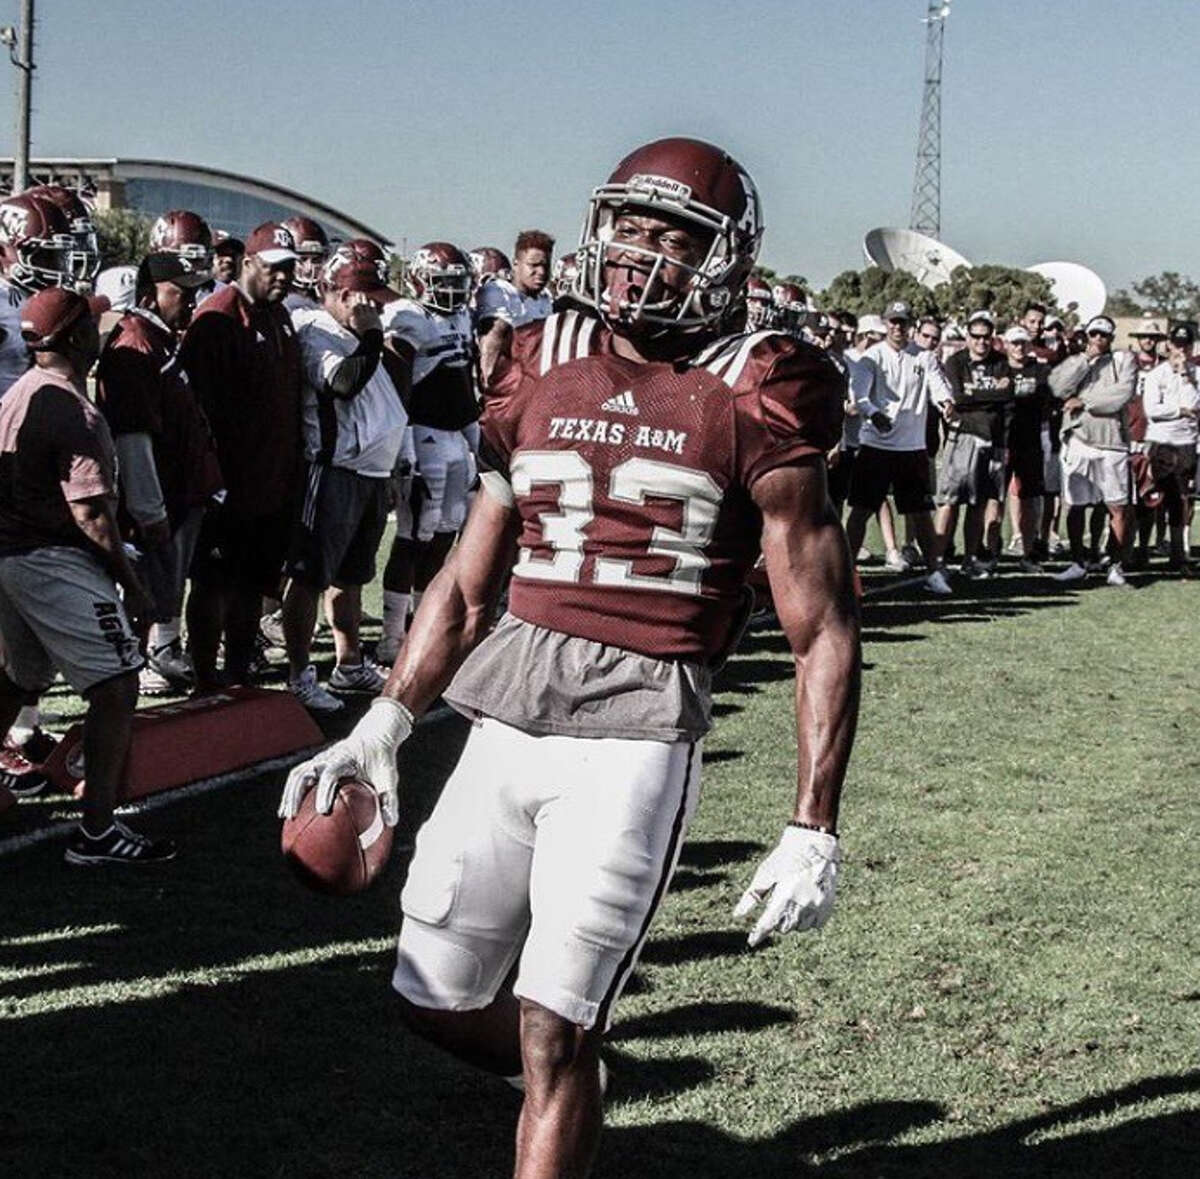 PHOTOS: Texas A&M football players in trouble with the law Texas A&M sophomore receiver Kirk Merritt has pleaded not guilty to two charges of indecent exposure from last fall. See what other Aggie football players have been arrested since 2010 ...